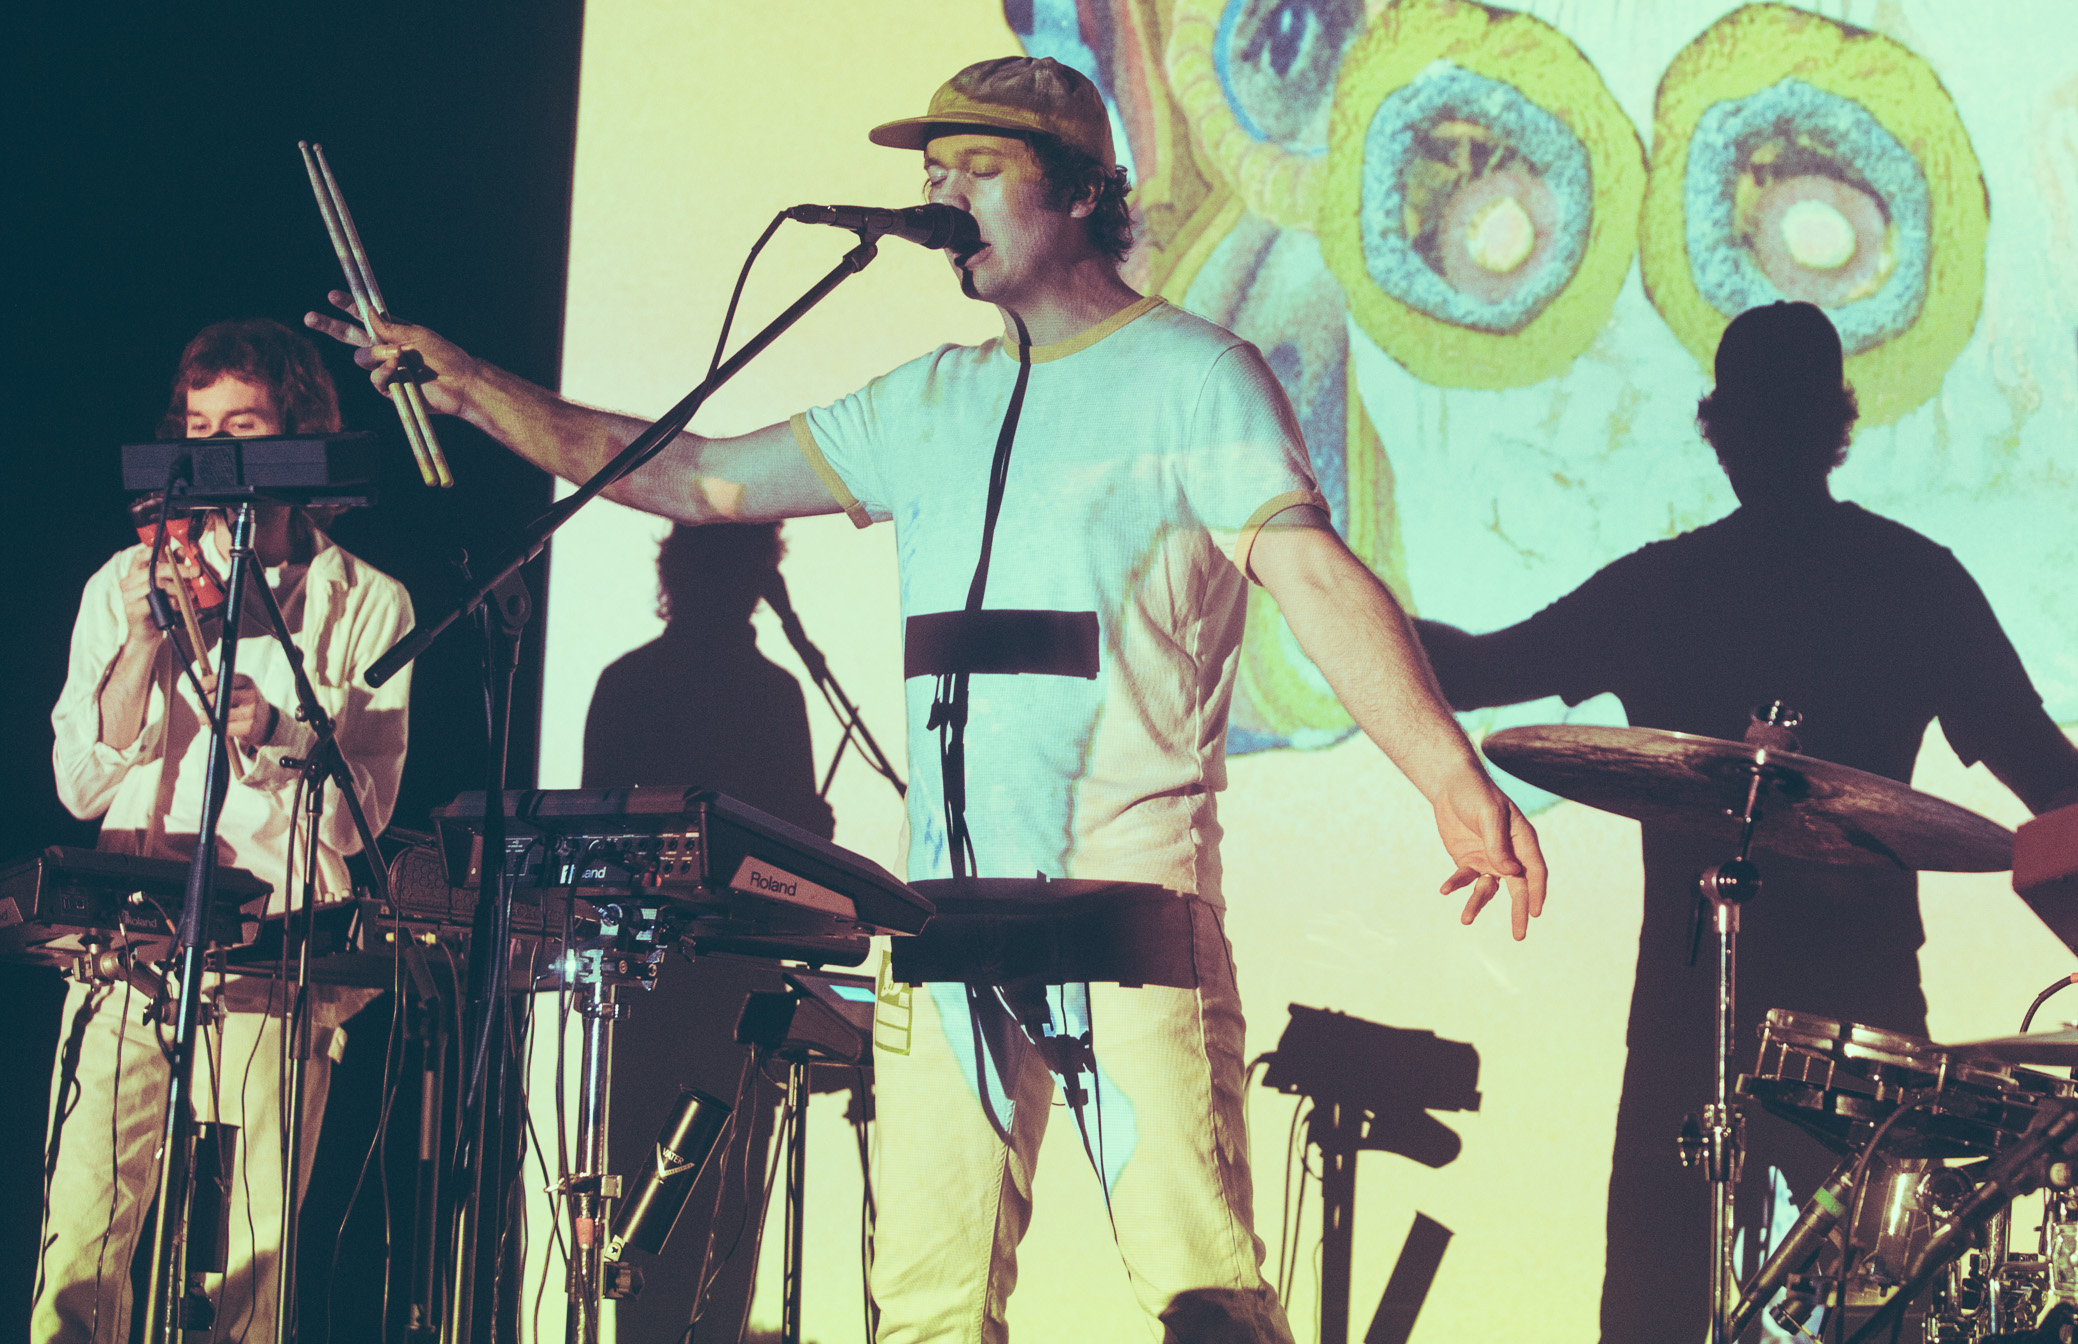 Washed Out performs in concert at Saturn Birmingham in Birmingham, Alabama on February 24th, 2018. (Photo by David A. Smith/DSmithScenes